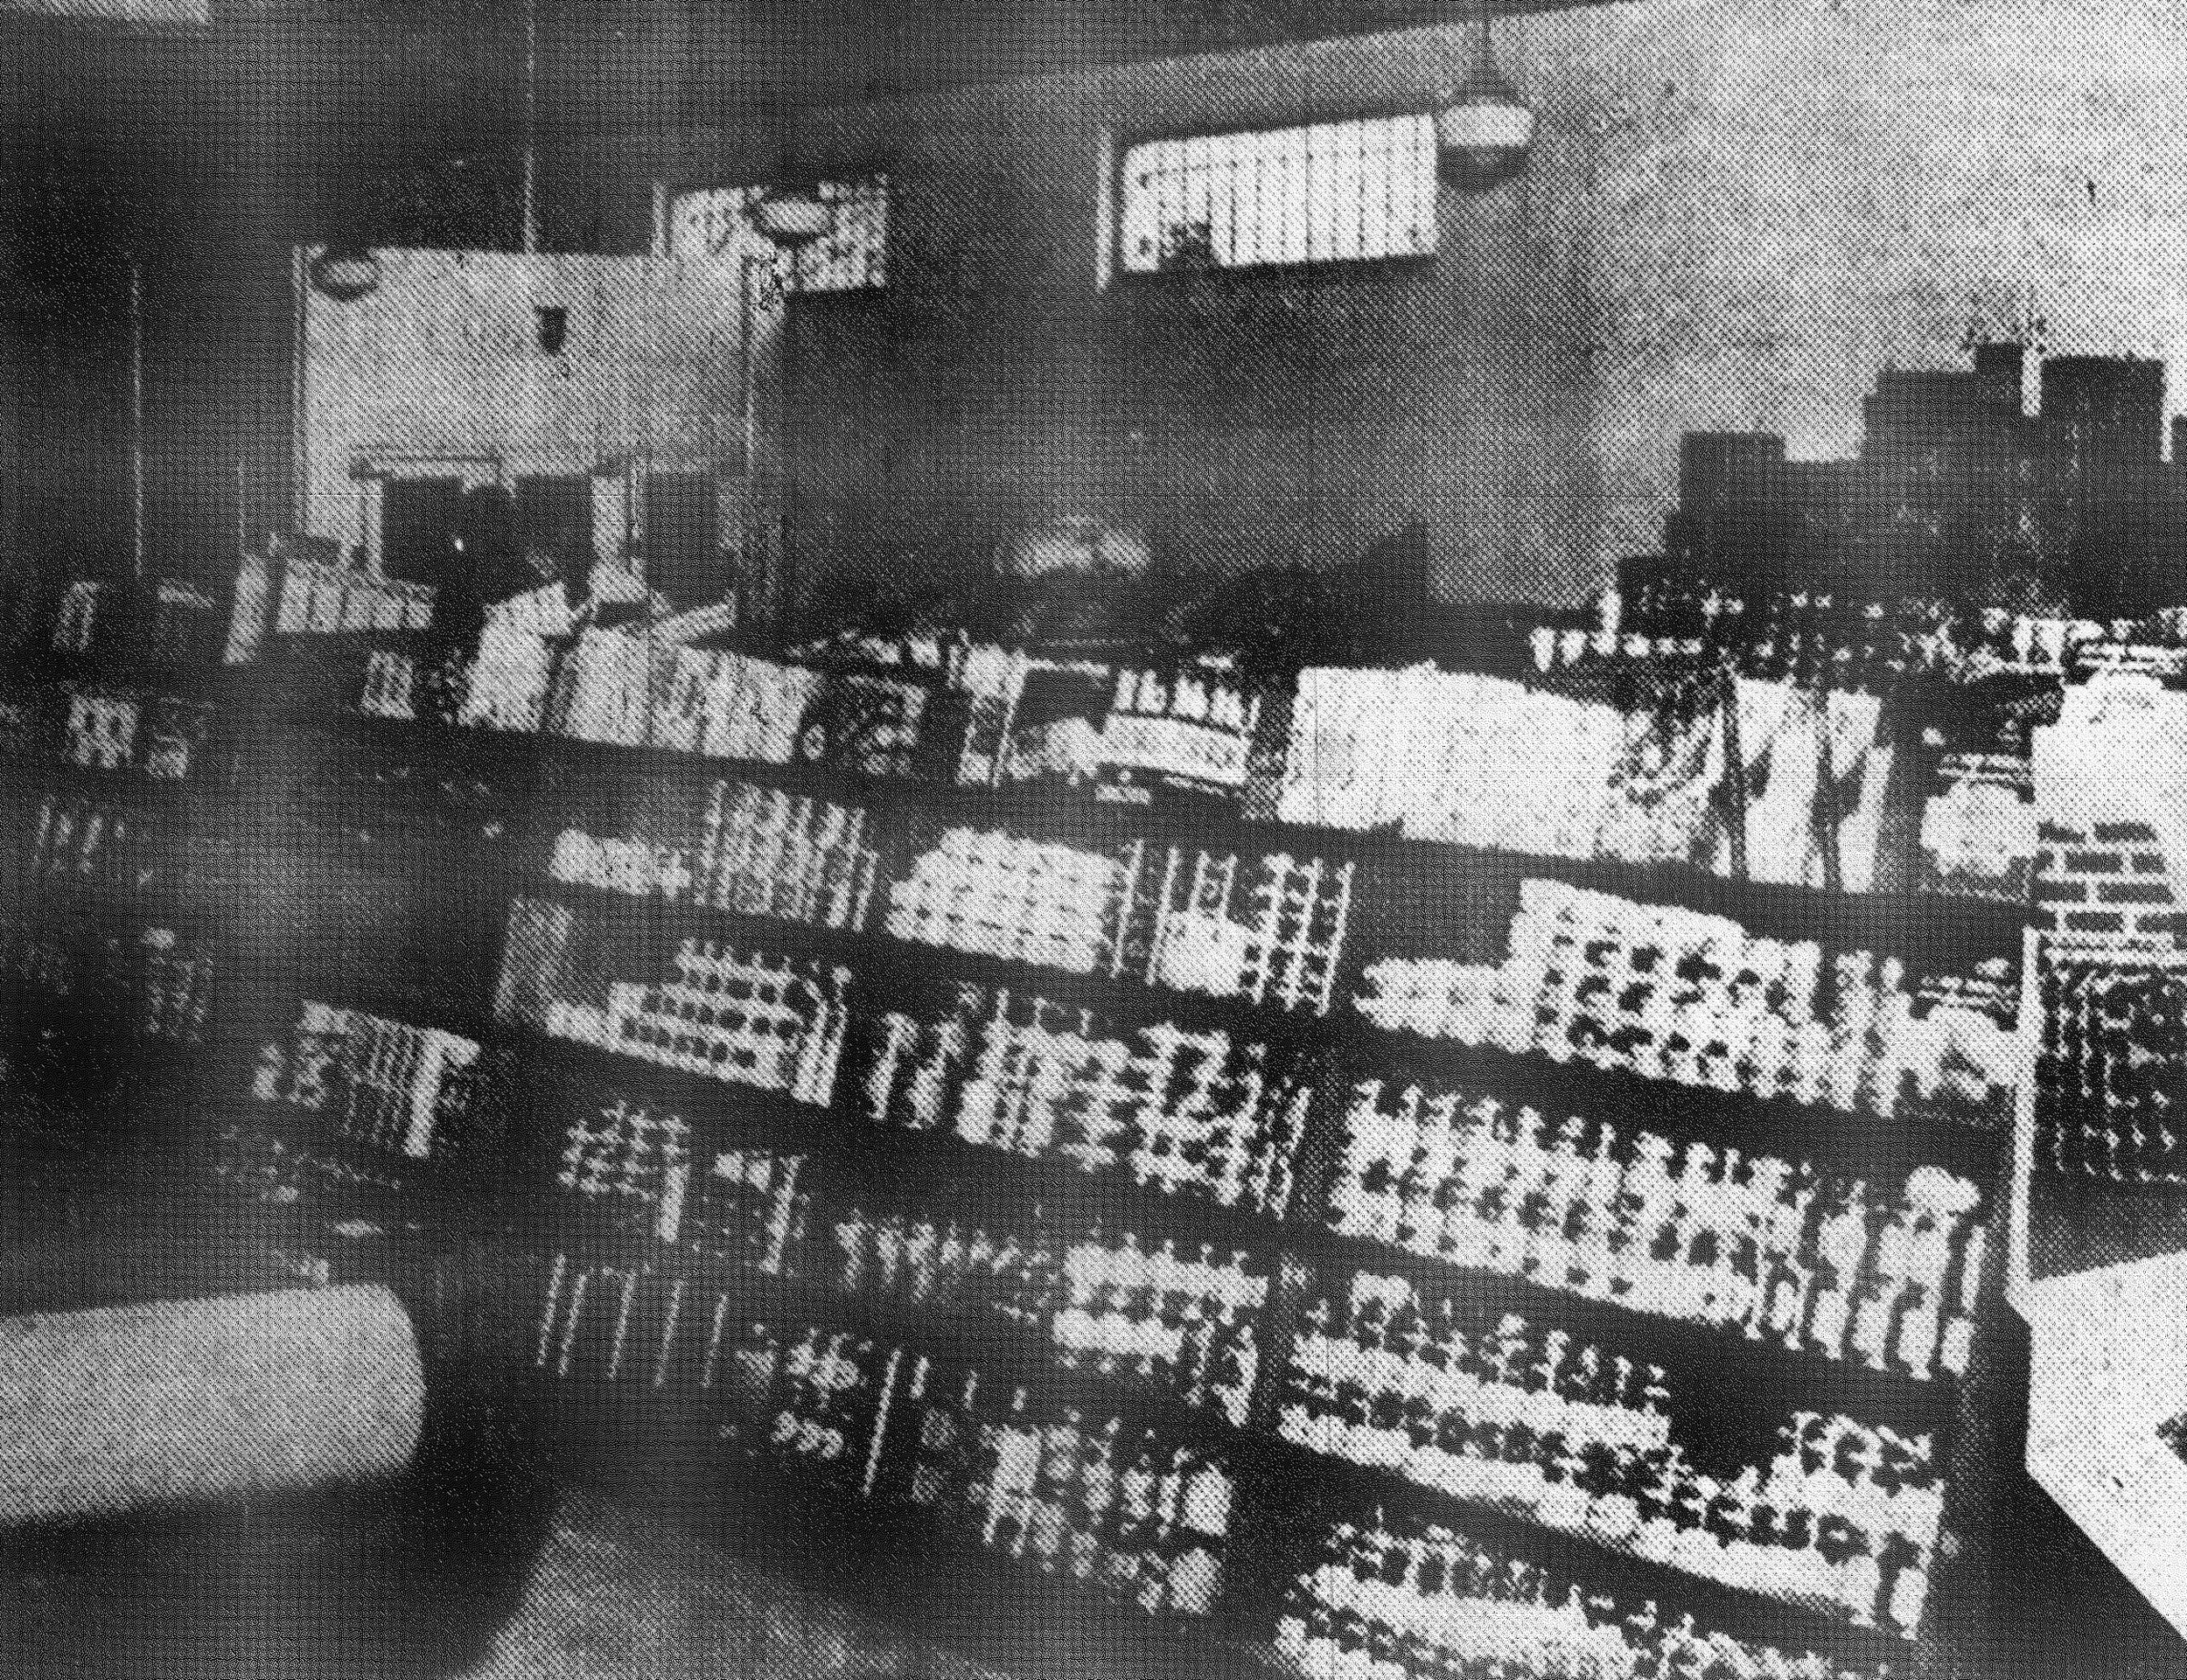 The Cantey-Plowden Co. store, seen here in 1942, was equipped with new and modern fixtures and included a complete meat market department. A large parking lot at the rear of the building was an added convenience to customers. B.O. Cantey and W.R. Plowden were active managers of the company.